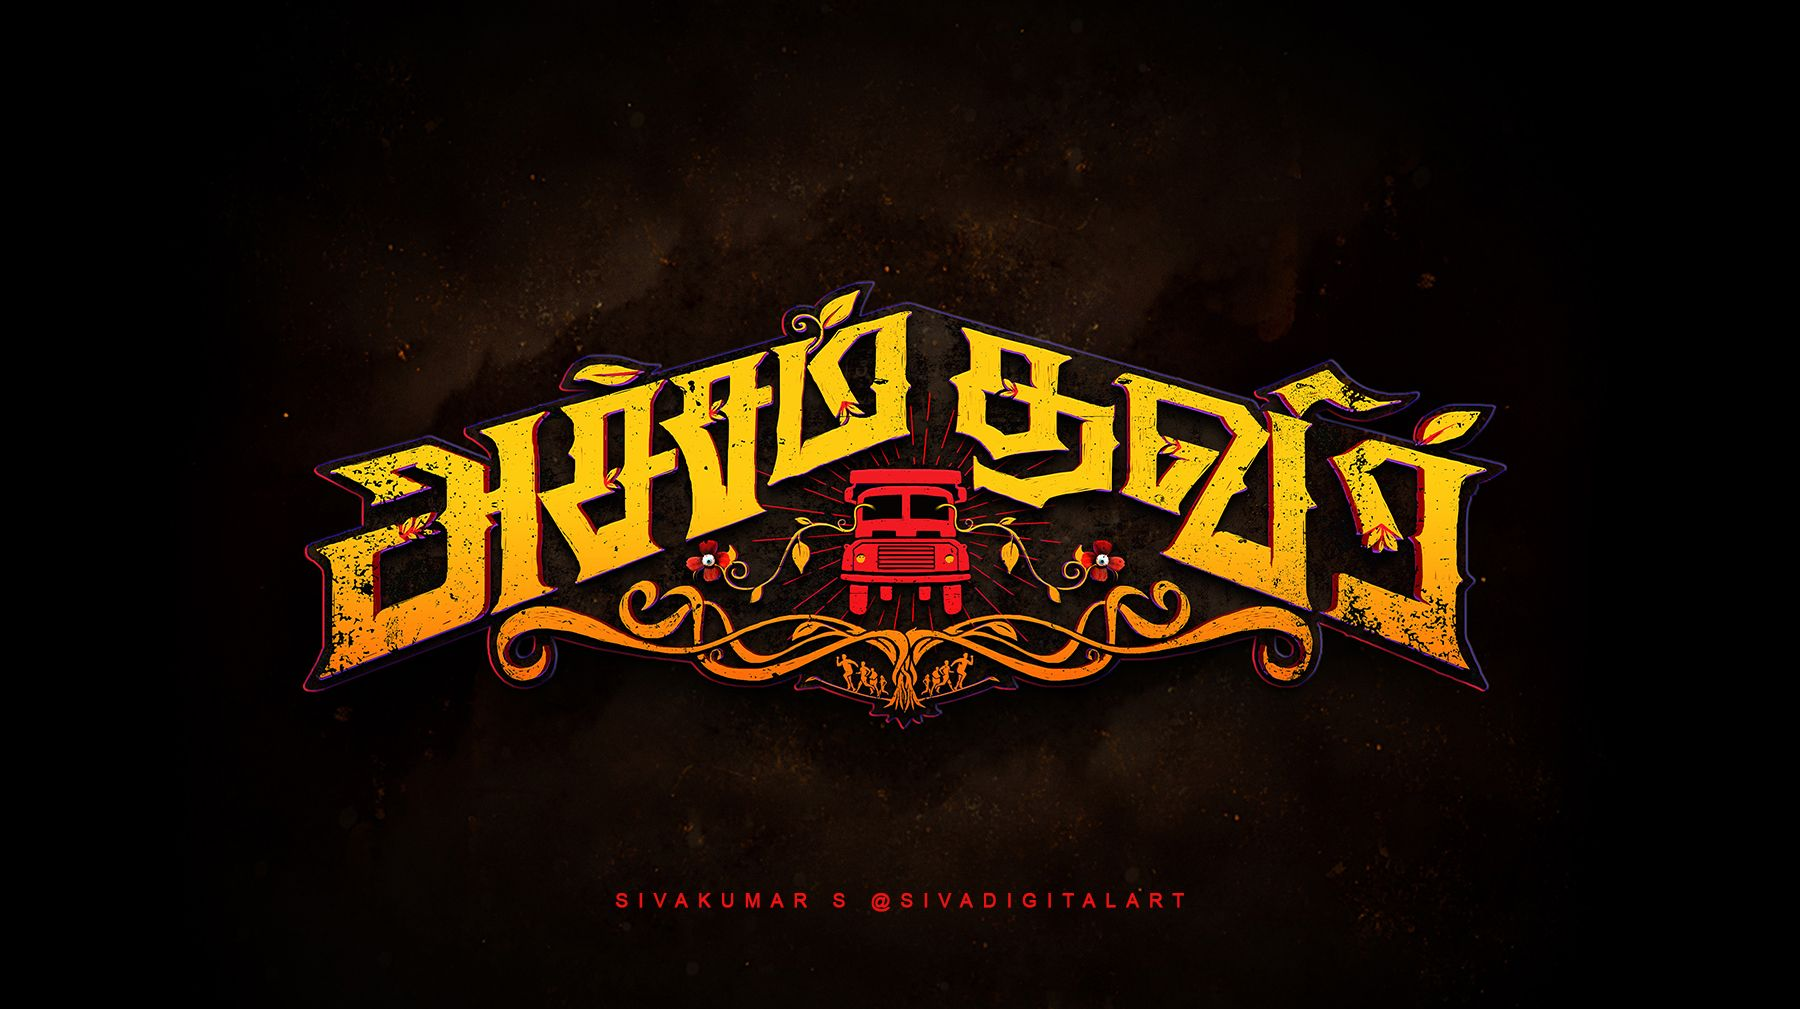 Title design for an upcoming tamil film Atcham Thavir. A.